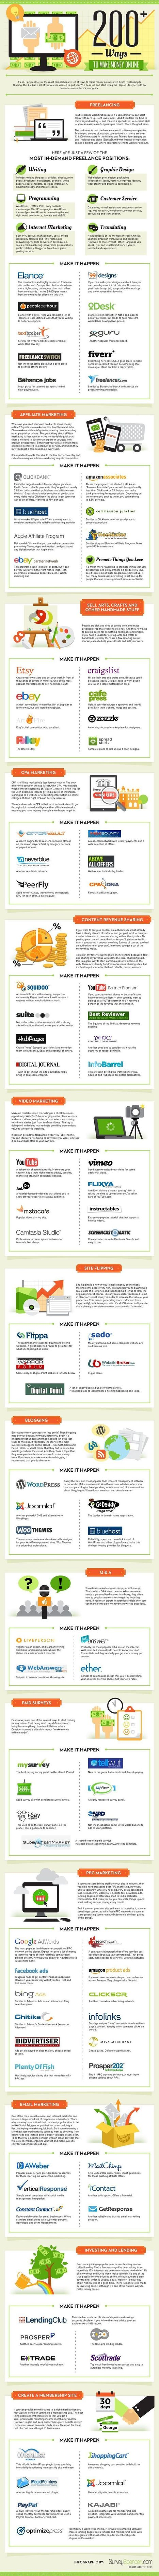 200+ Ways To Make Money Online [infographic]   Social Media Marketing Tips and Tools   Scoop.it